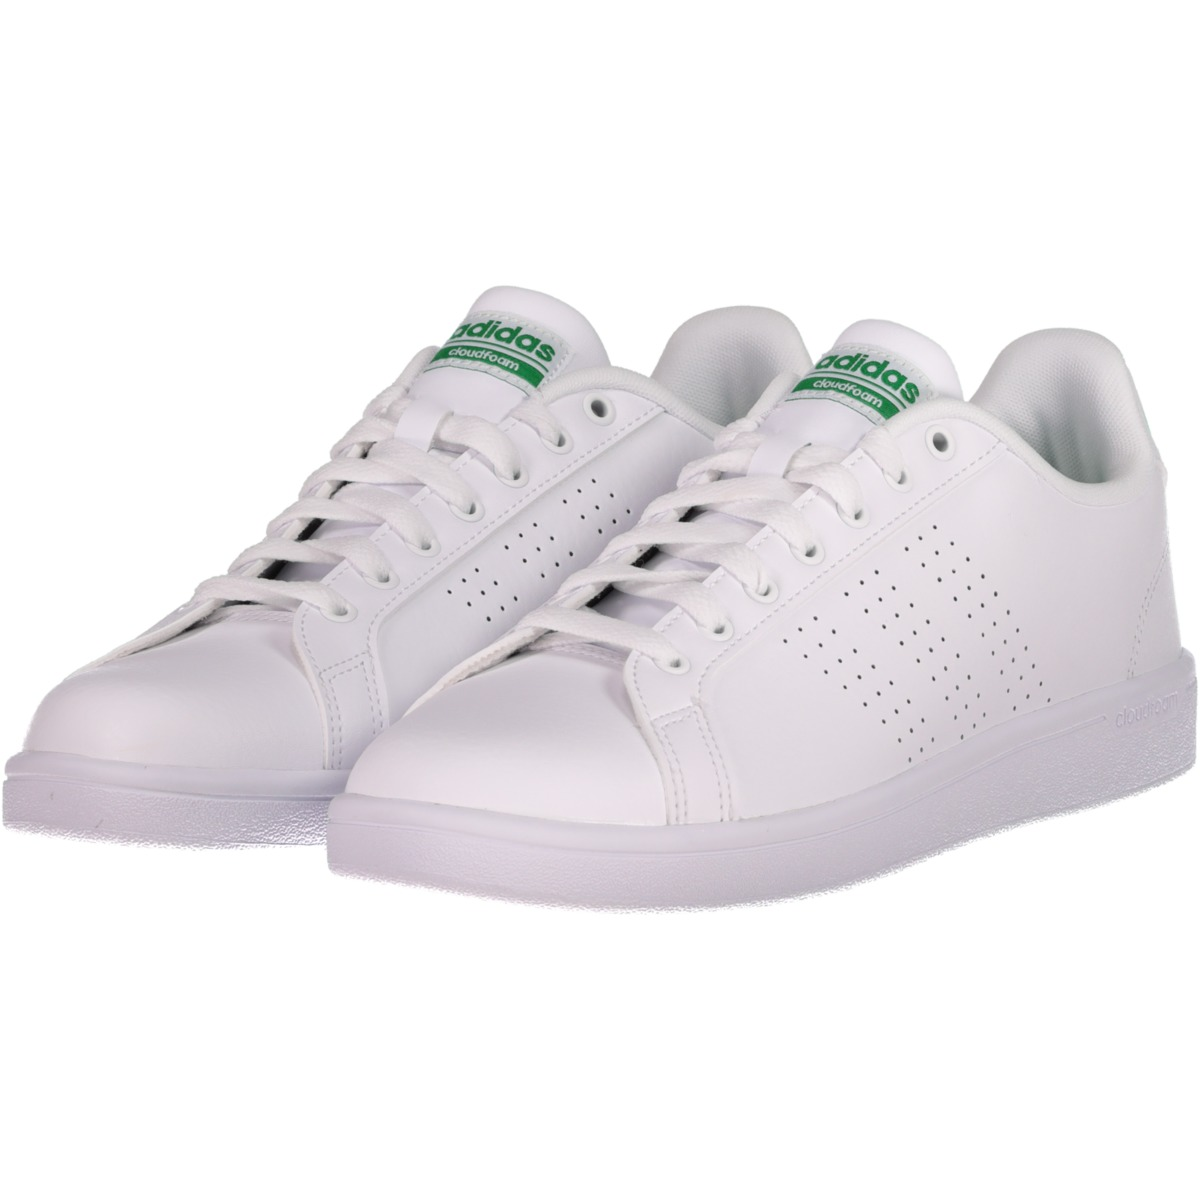 Cloudfoam Advantage Clean, sneakers unisex